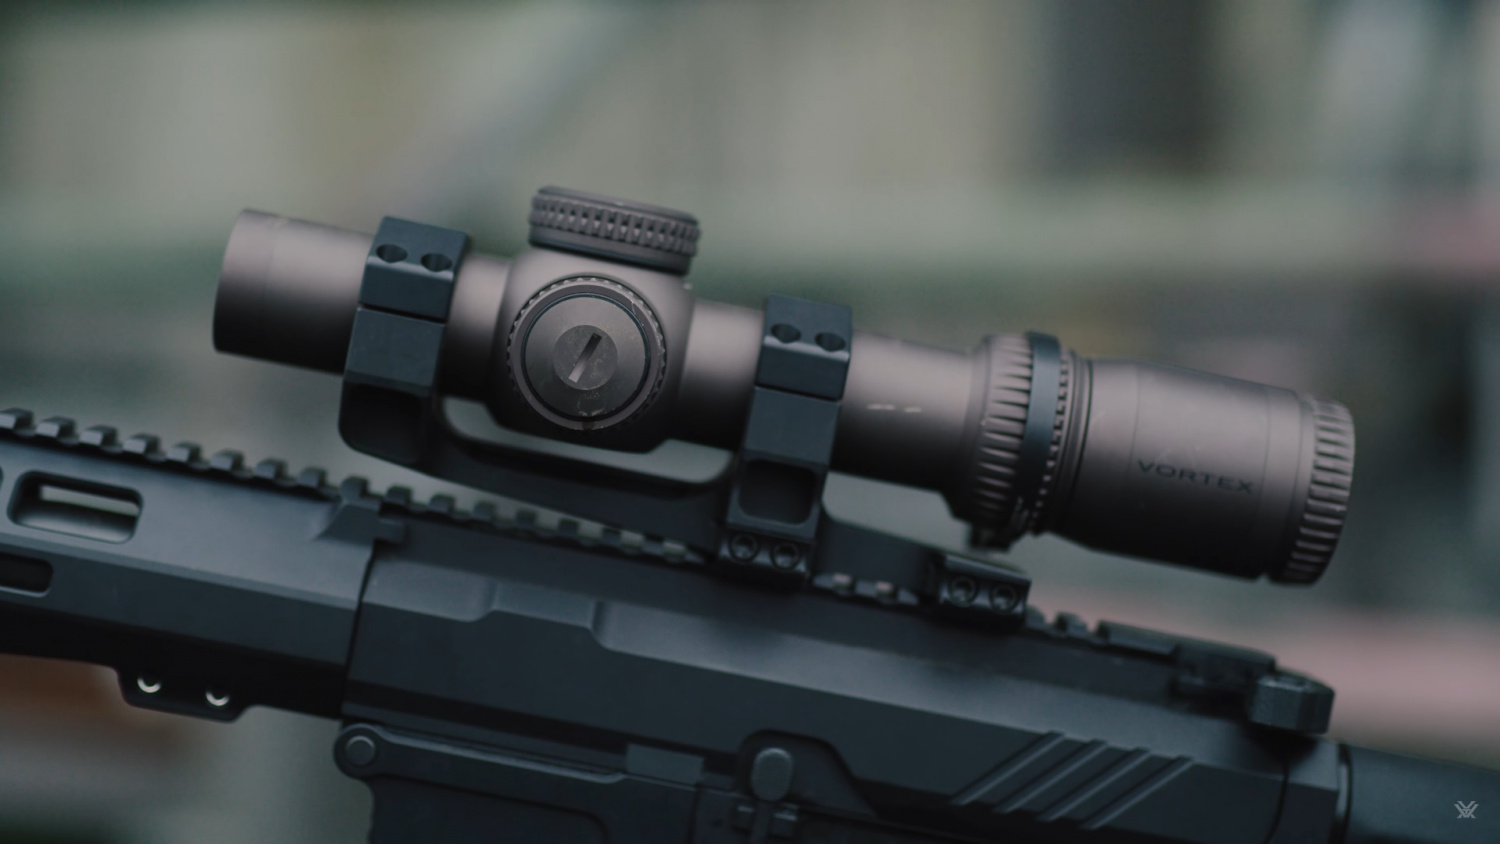 A frame from Vortex's hype video shows the Gen III 1-10x mounted.